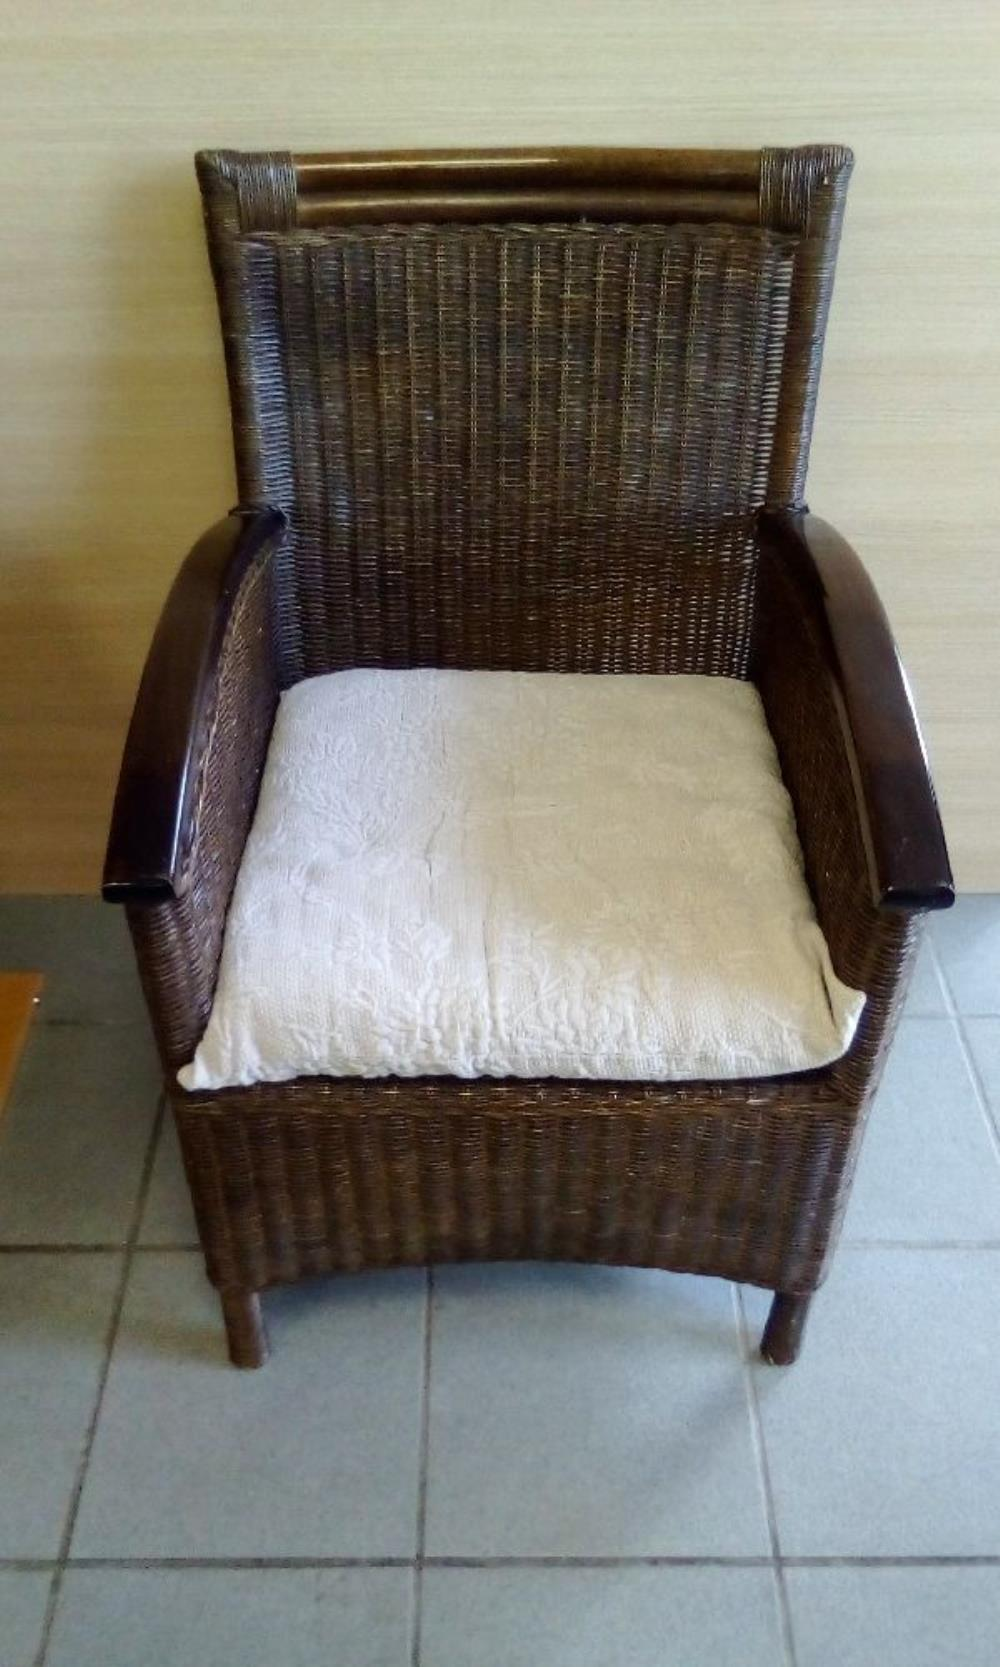 FAUTEUIL ROTIN occasion - Troc Bourges